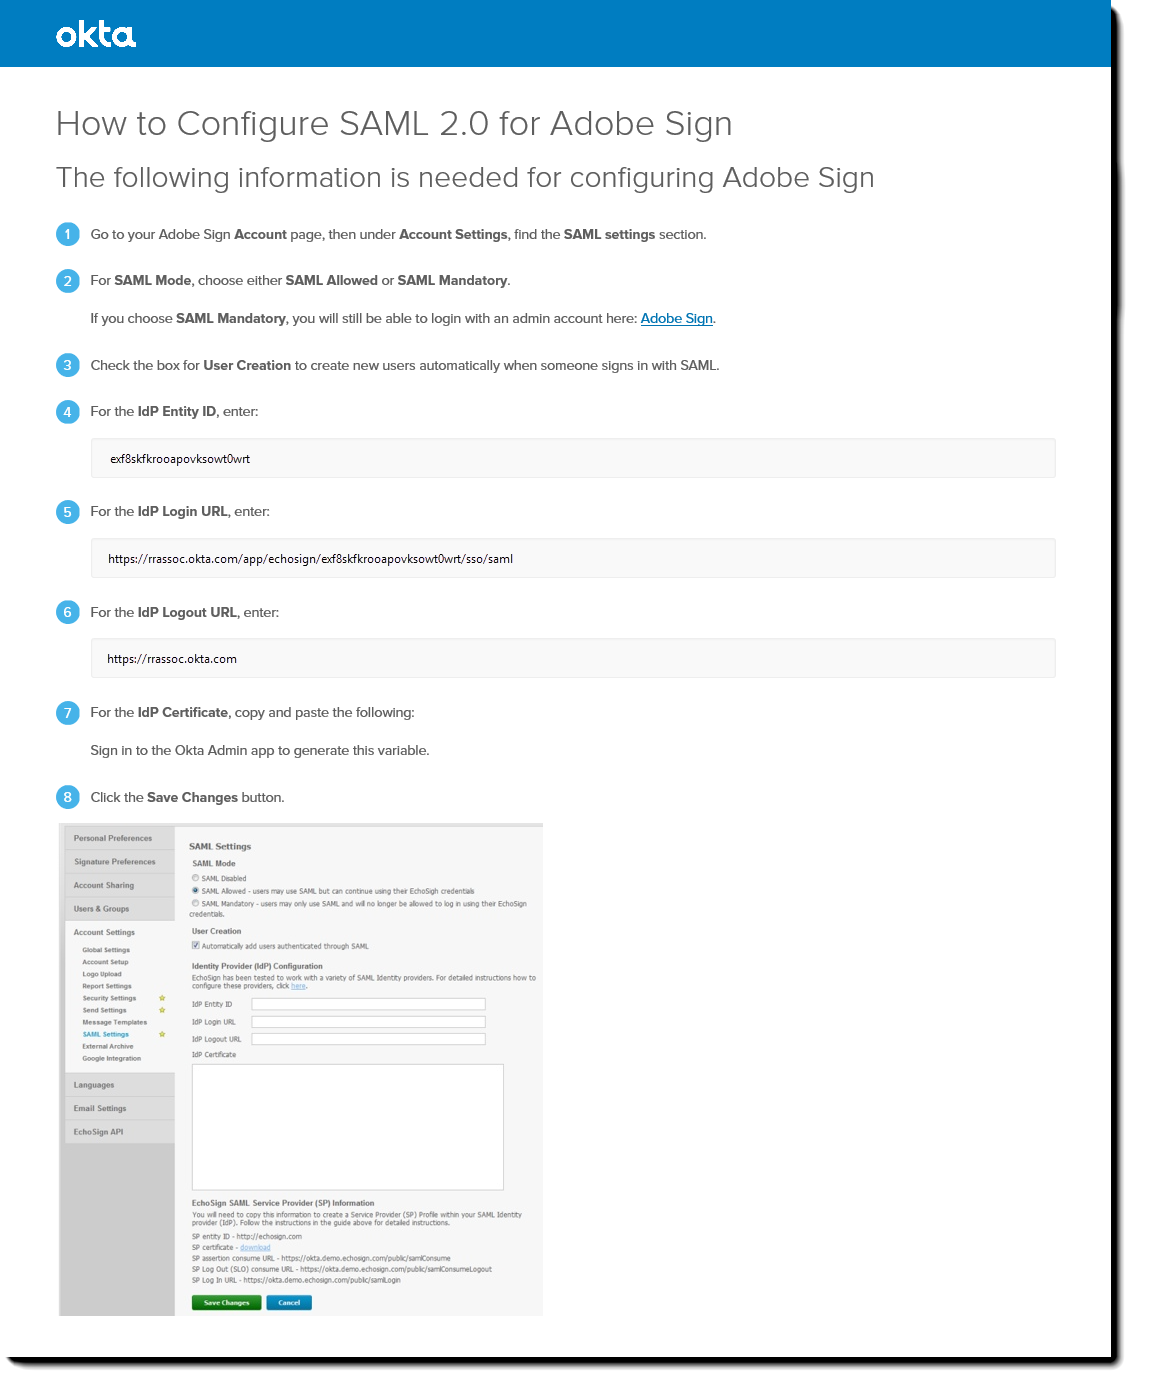 Okta How to Configure SAML 2.0 for Adobe Sign page